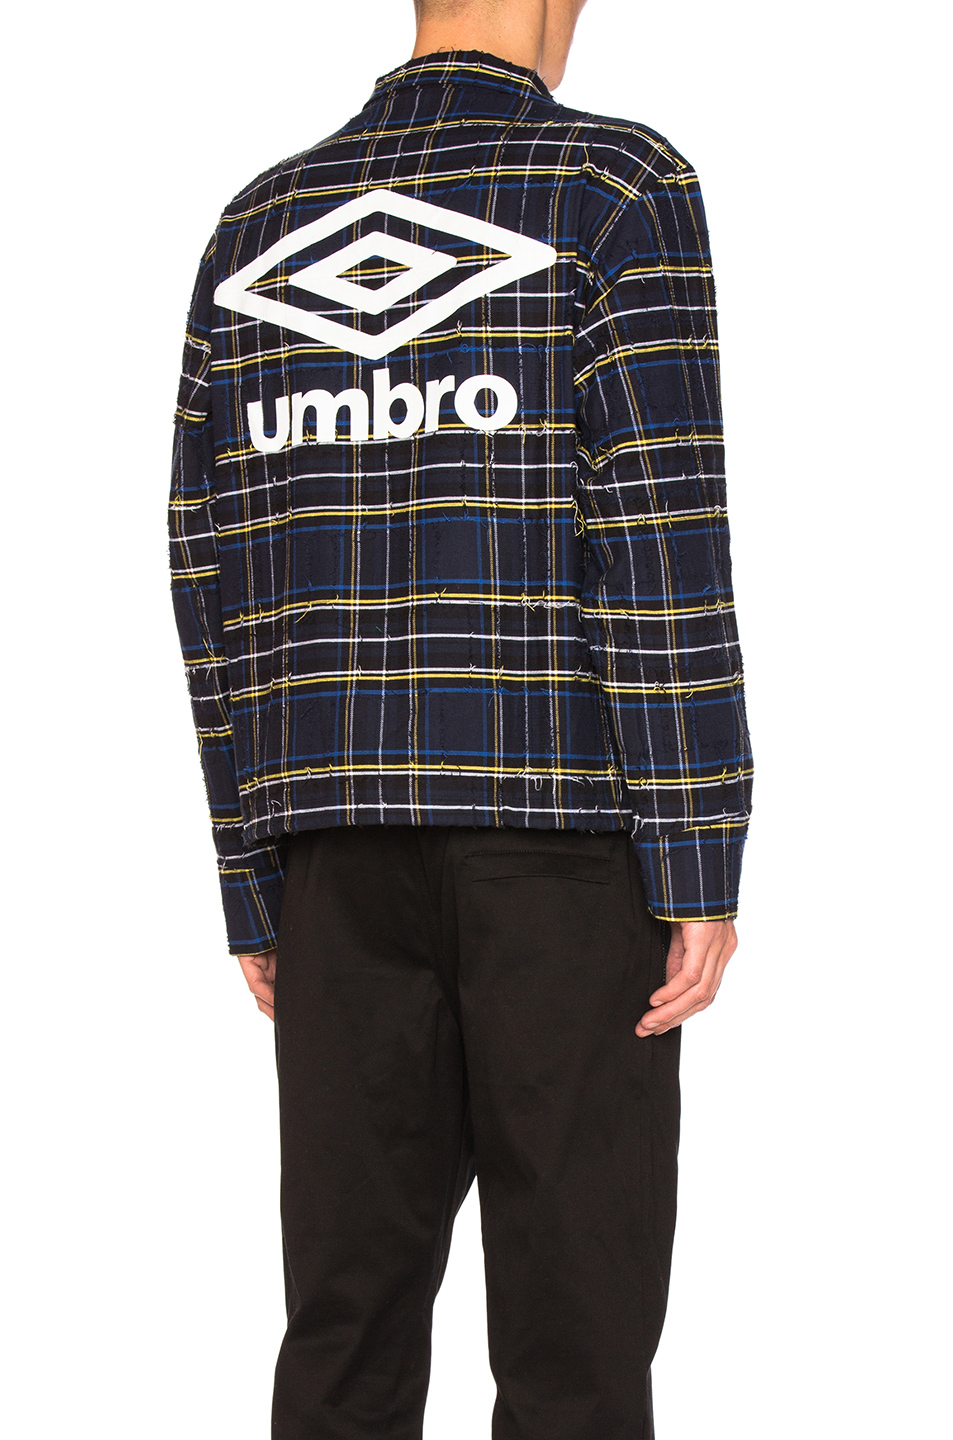 OFF-WHITE x Umbro Jacket in Blue,Checkered & Plaid